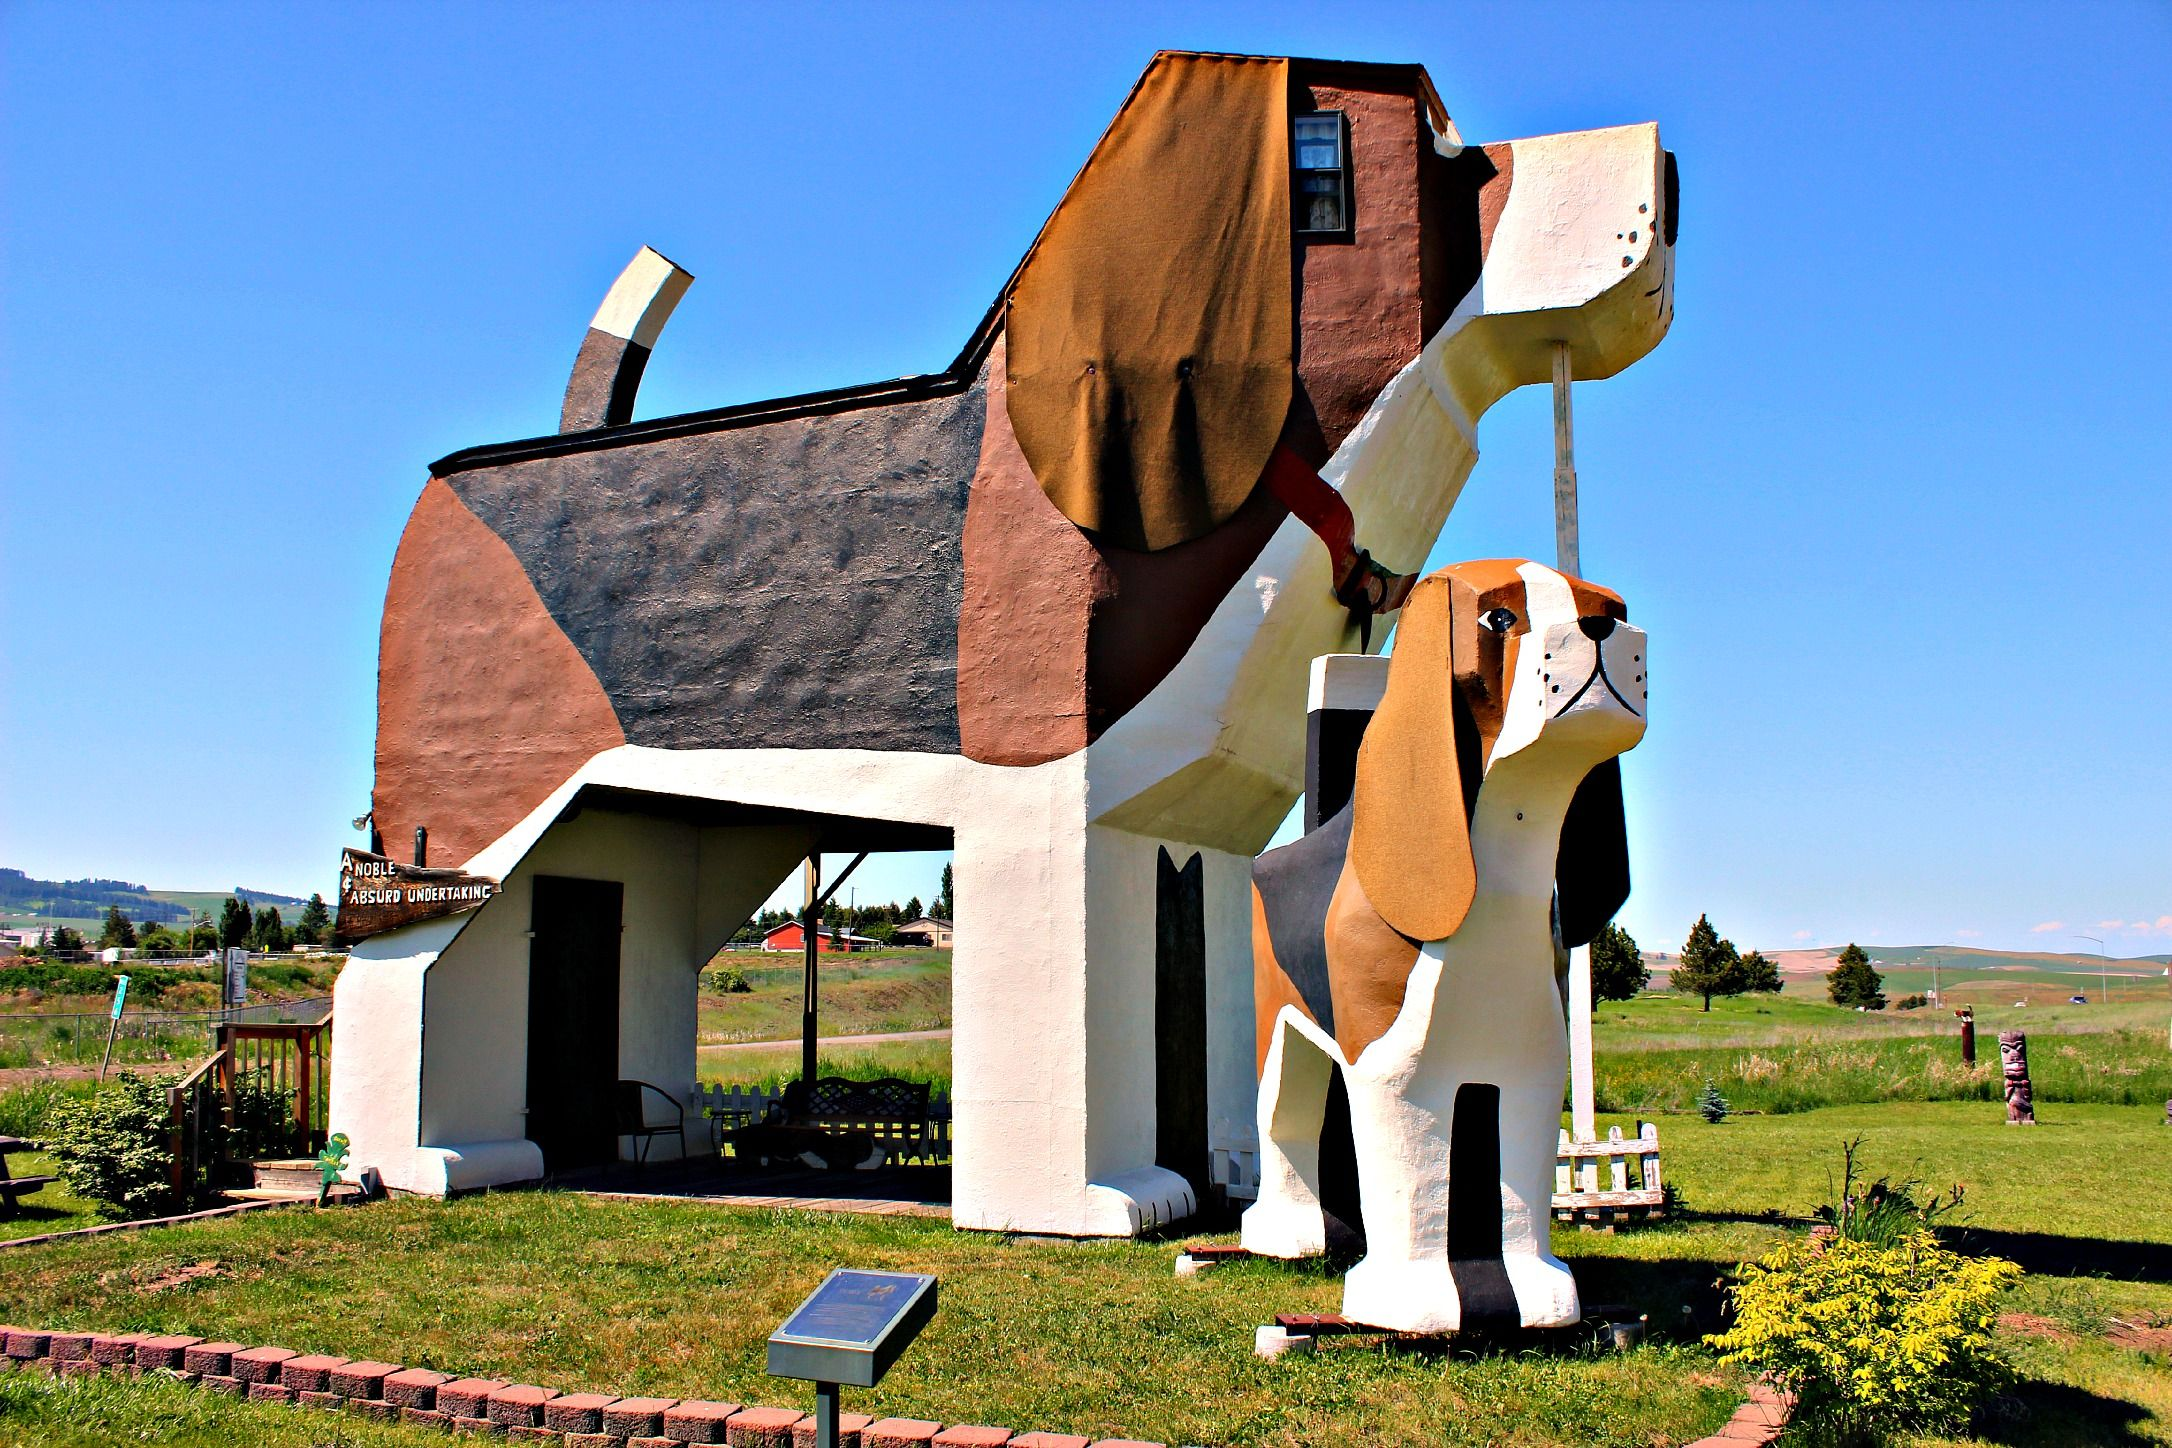 Dog and bark inn b and b outside picture idaho united states